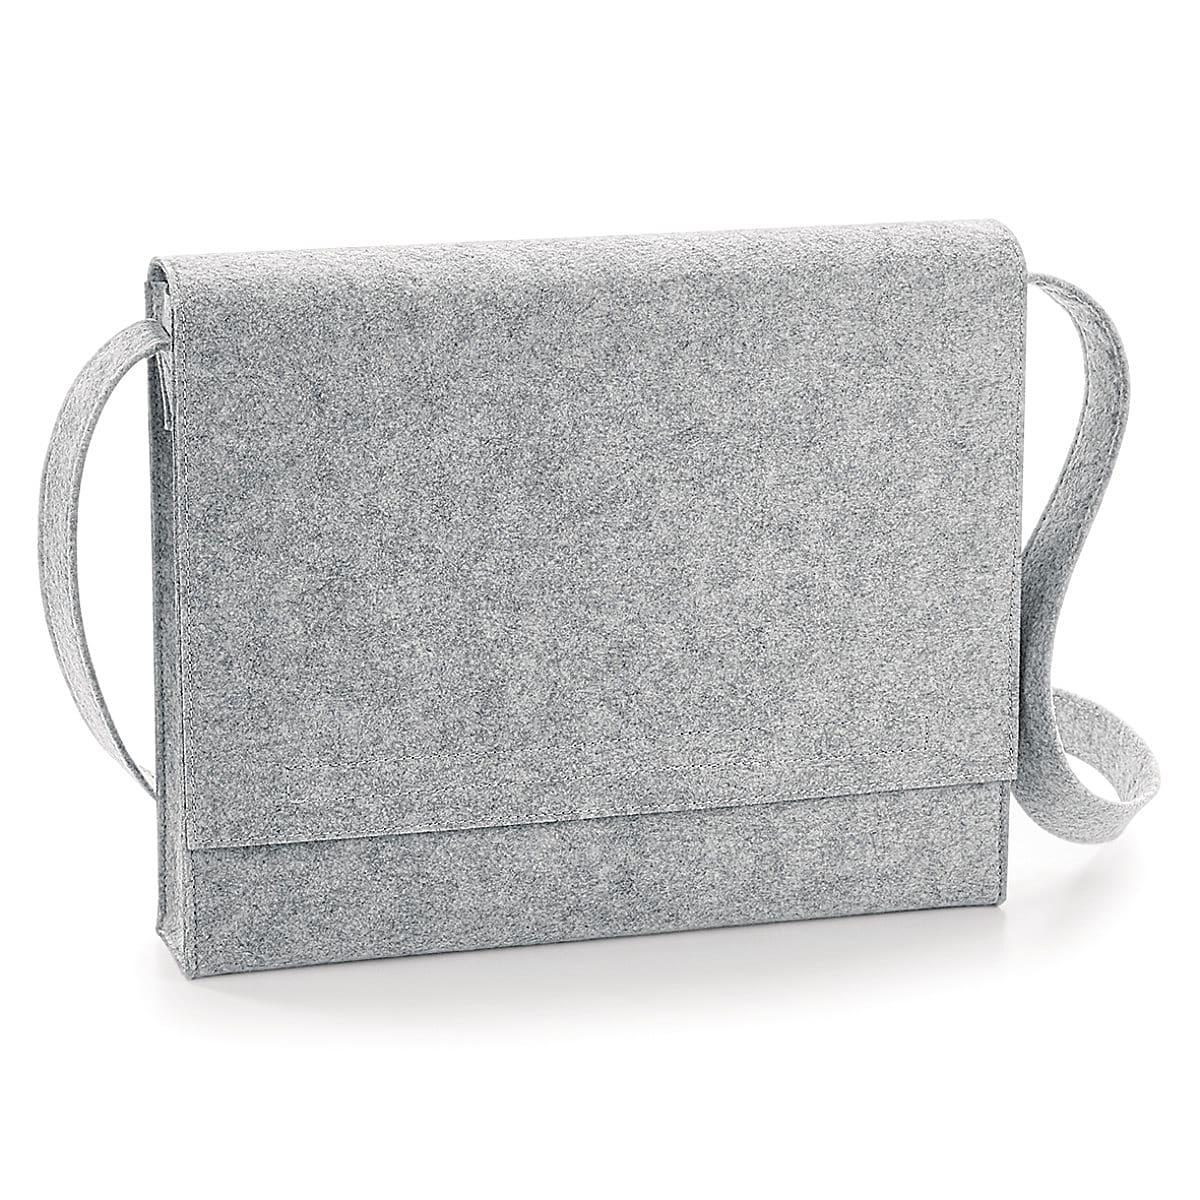 Bagbase Felt Messenger in Grey Melange (Product Code: BG730)